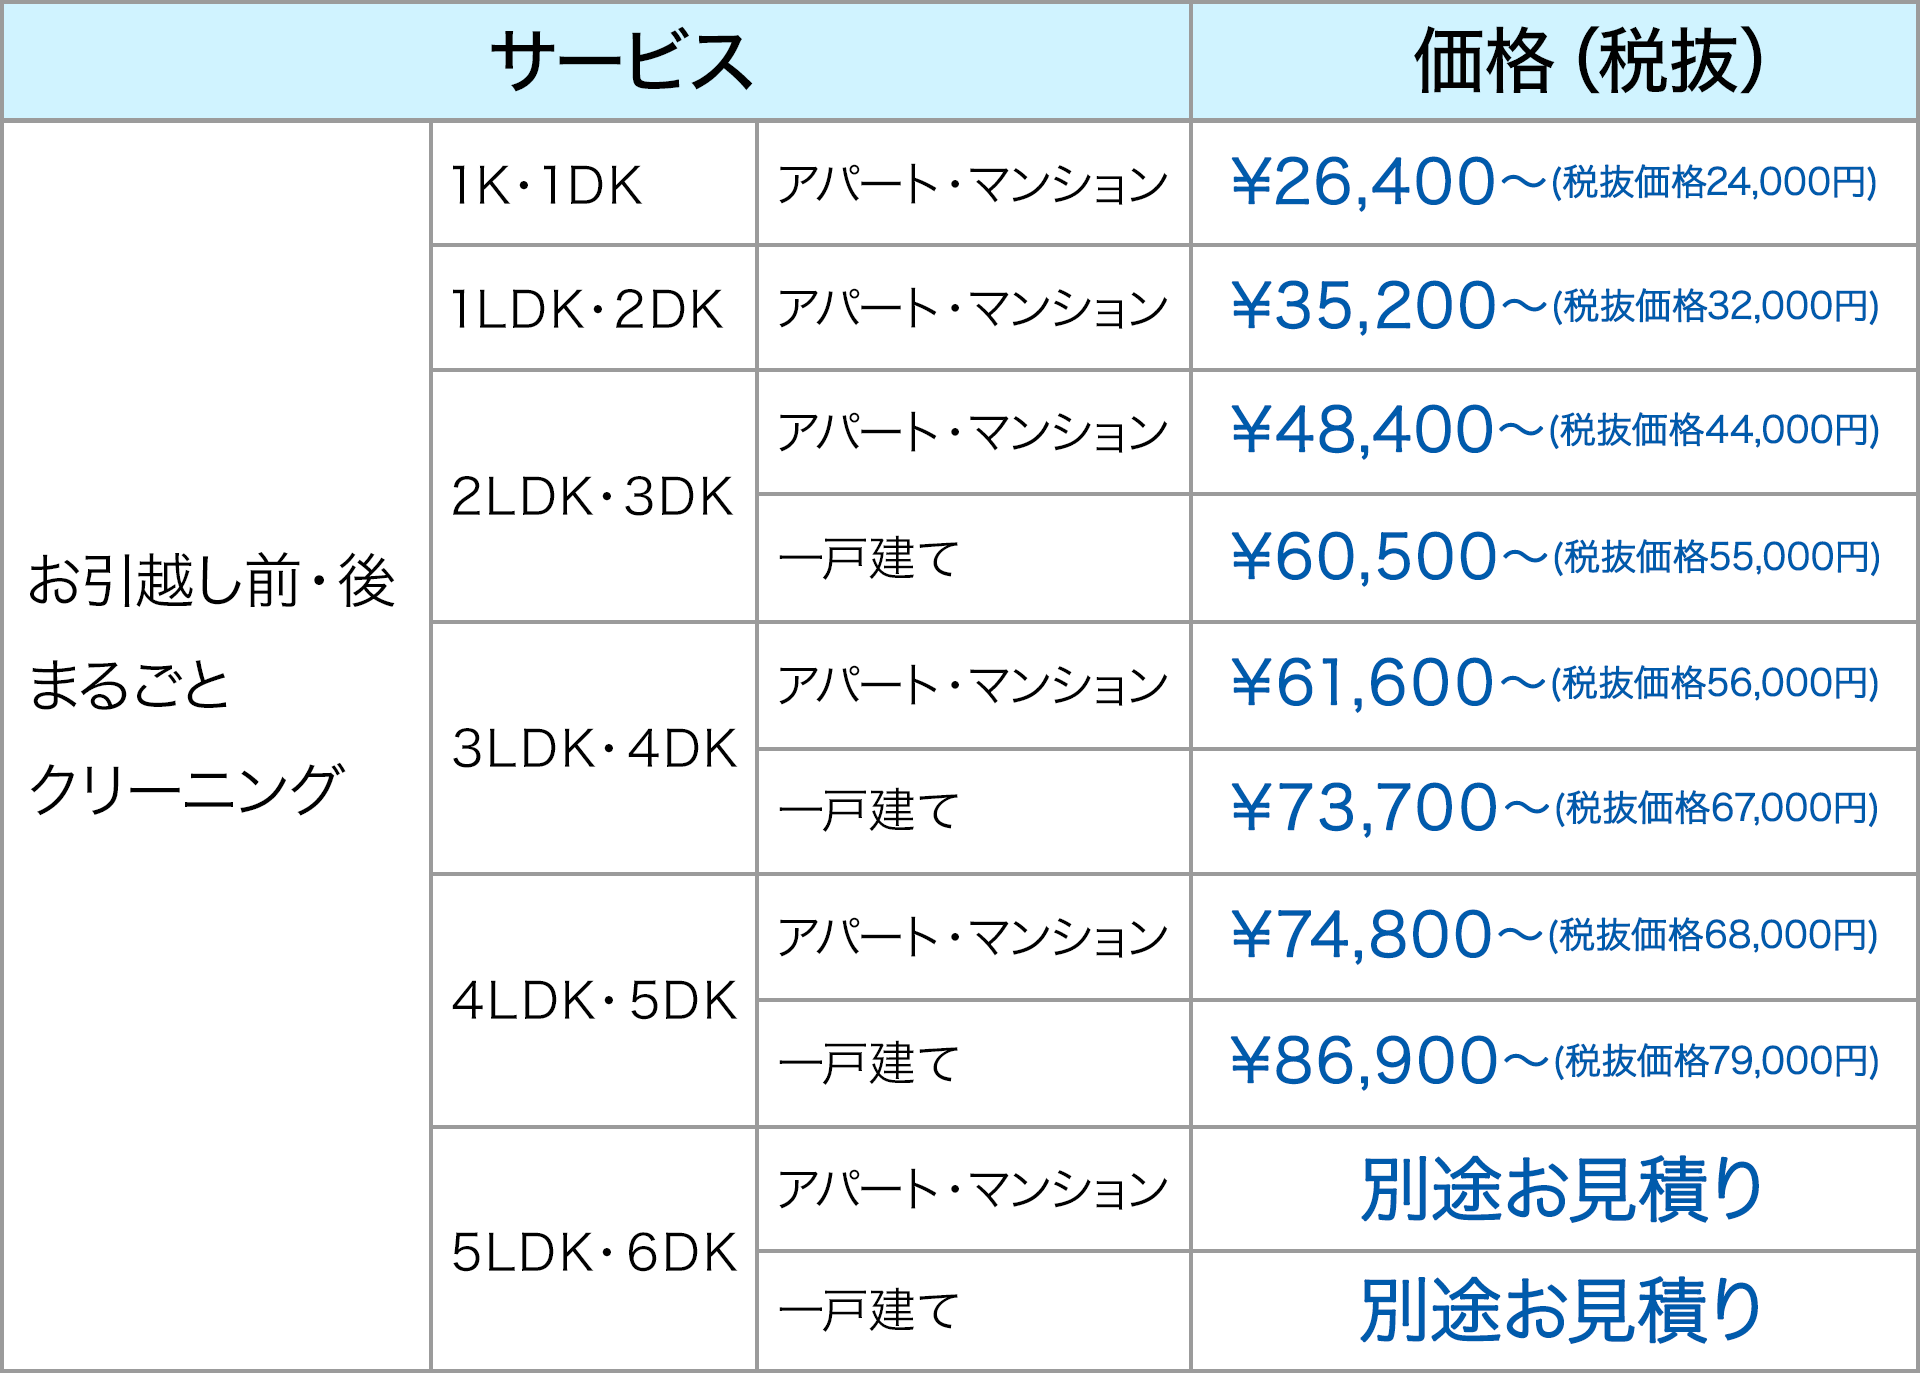 pricelist_main051